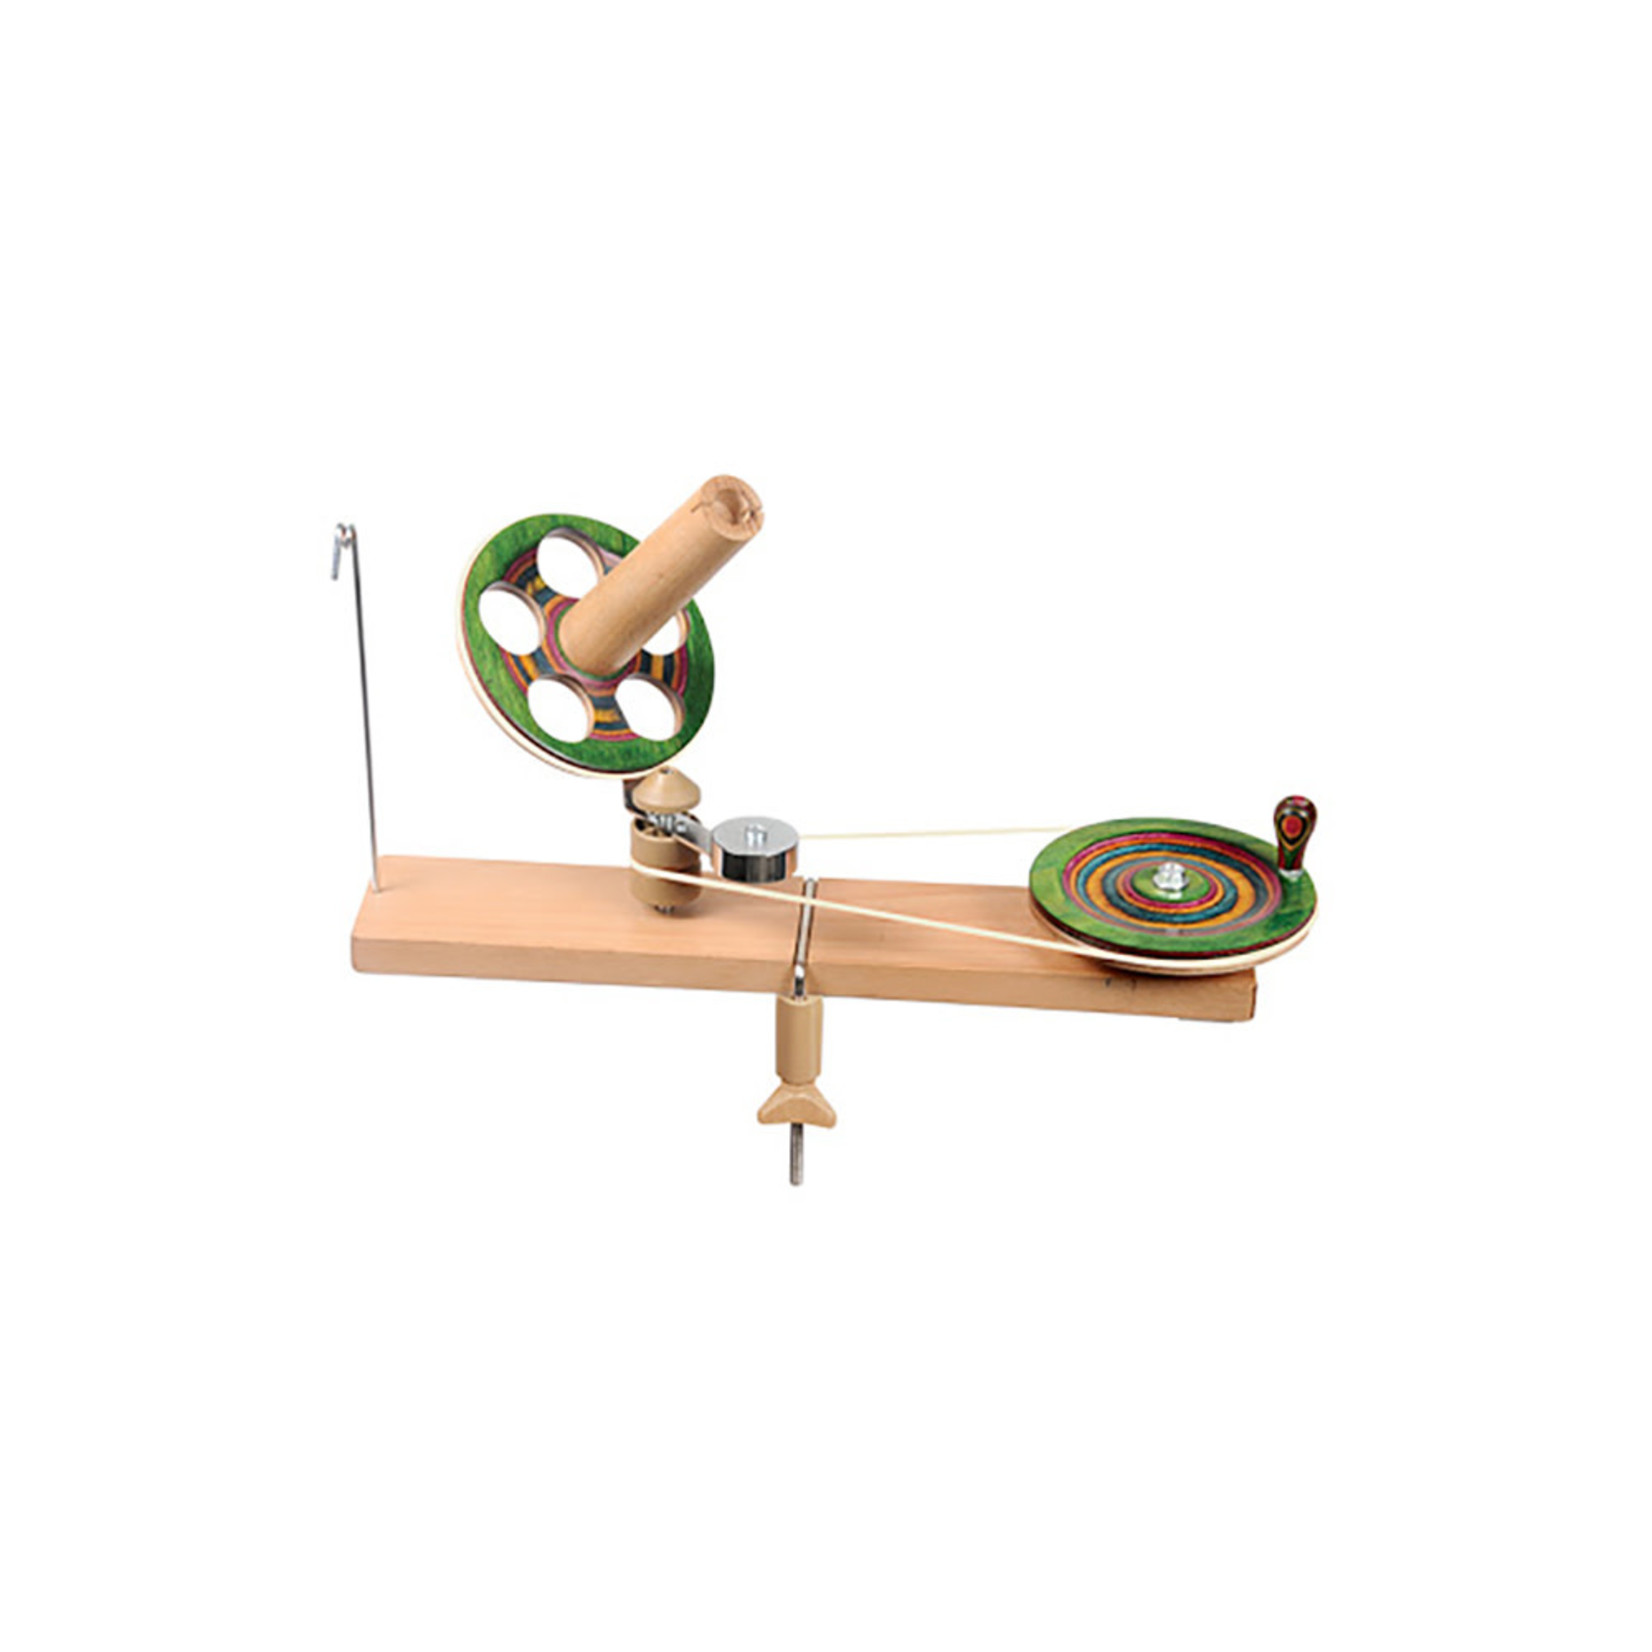 Knitter's Pride Signature Mega Wool Winder by Knitter's Pride